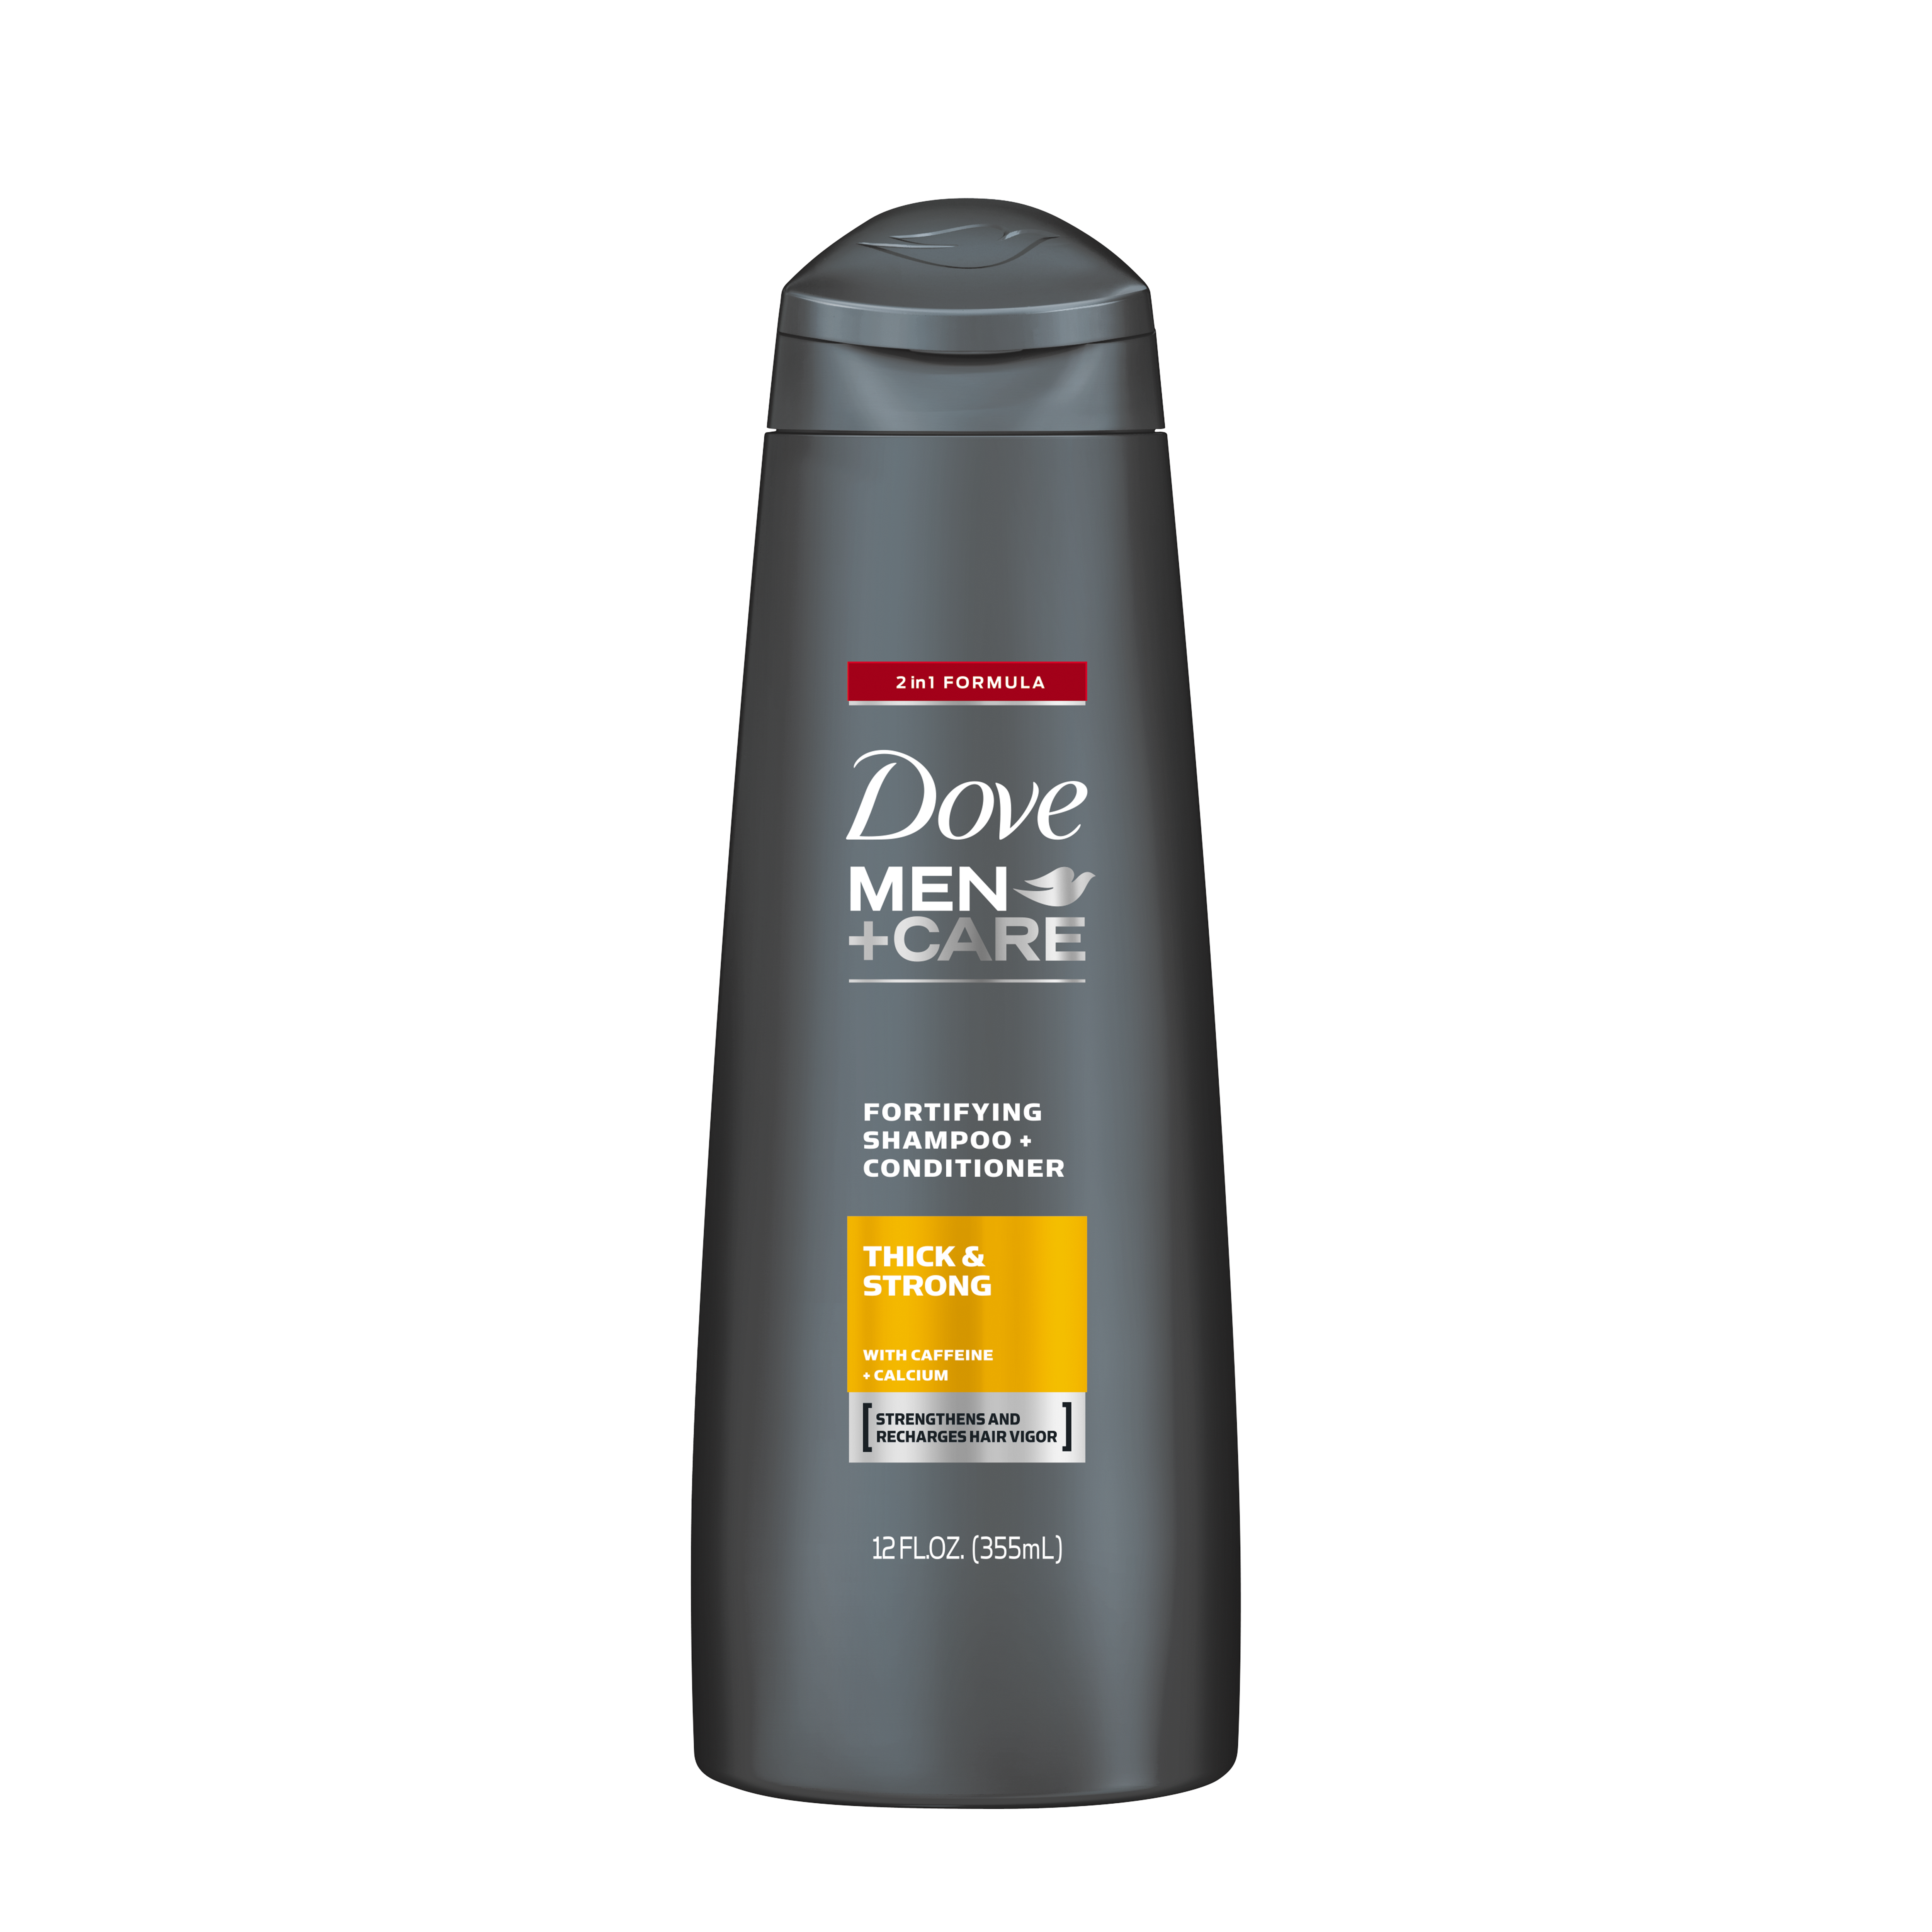 Dove Men+Care Thickening posilující šampon 400 ml